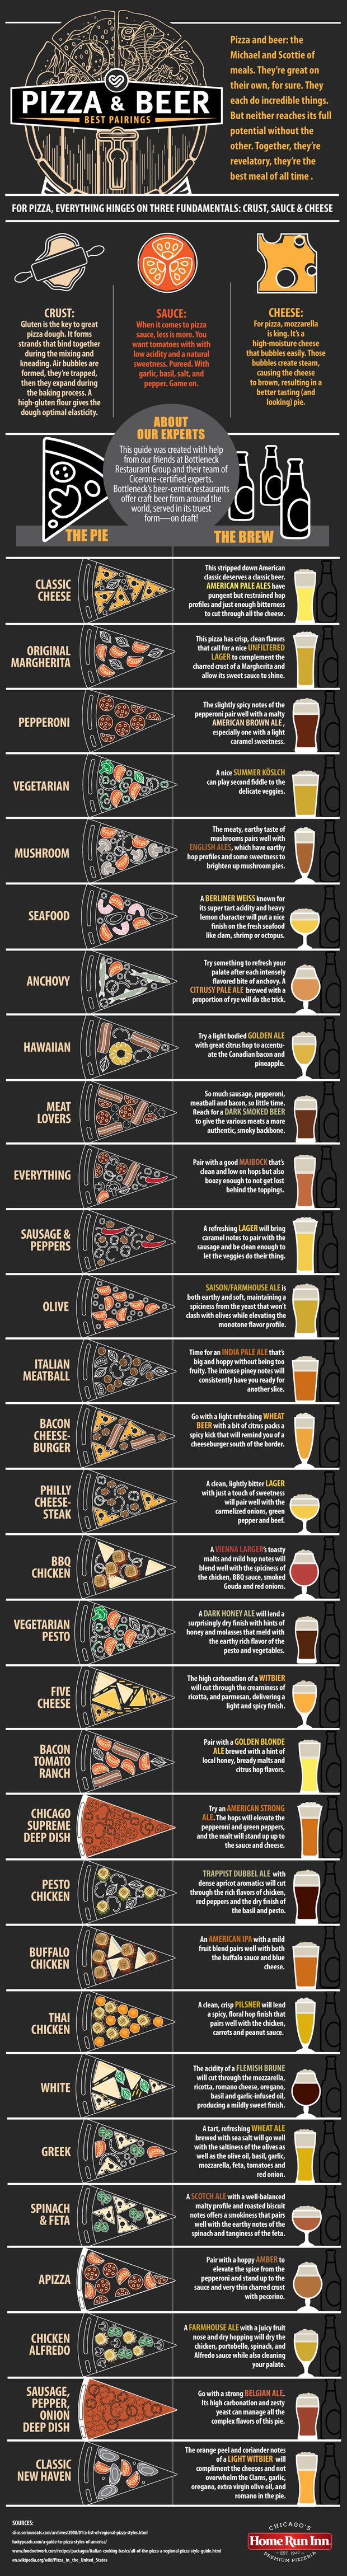 A Guide to Perfect Beer and Pizza Pairings | Mental Floss